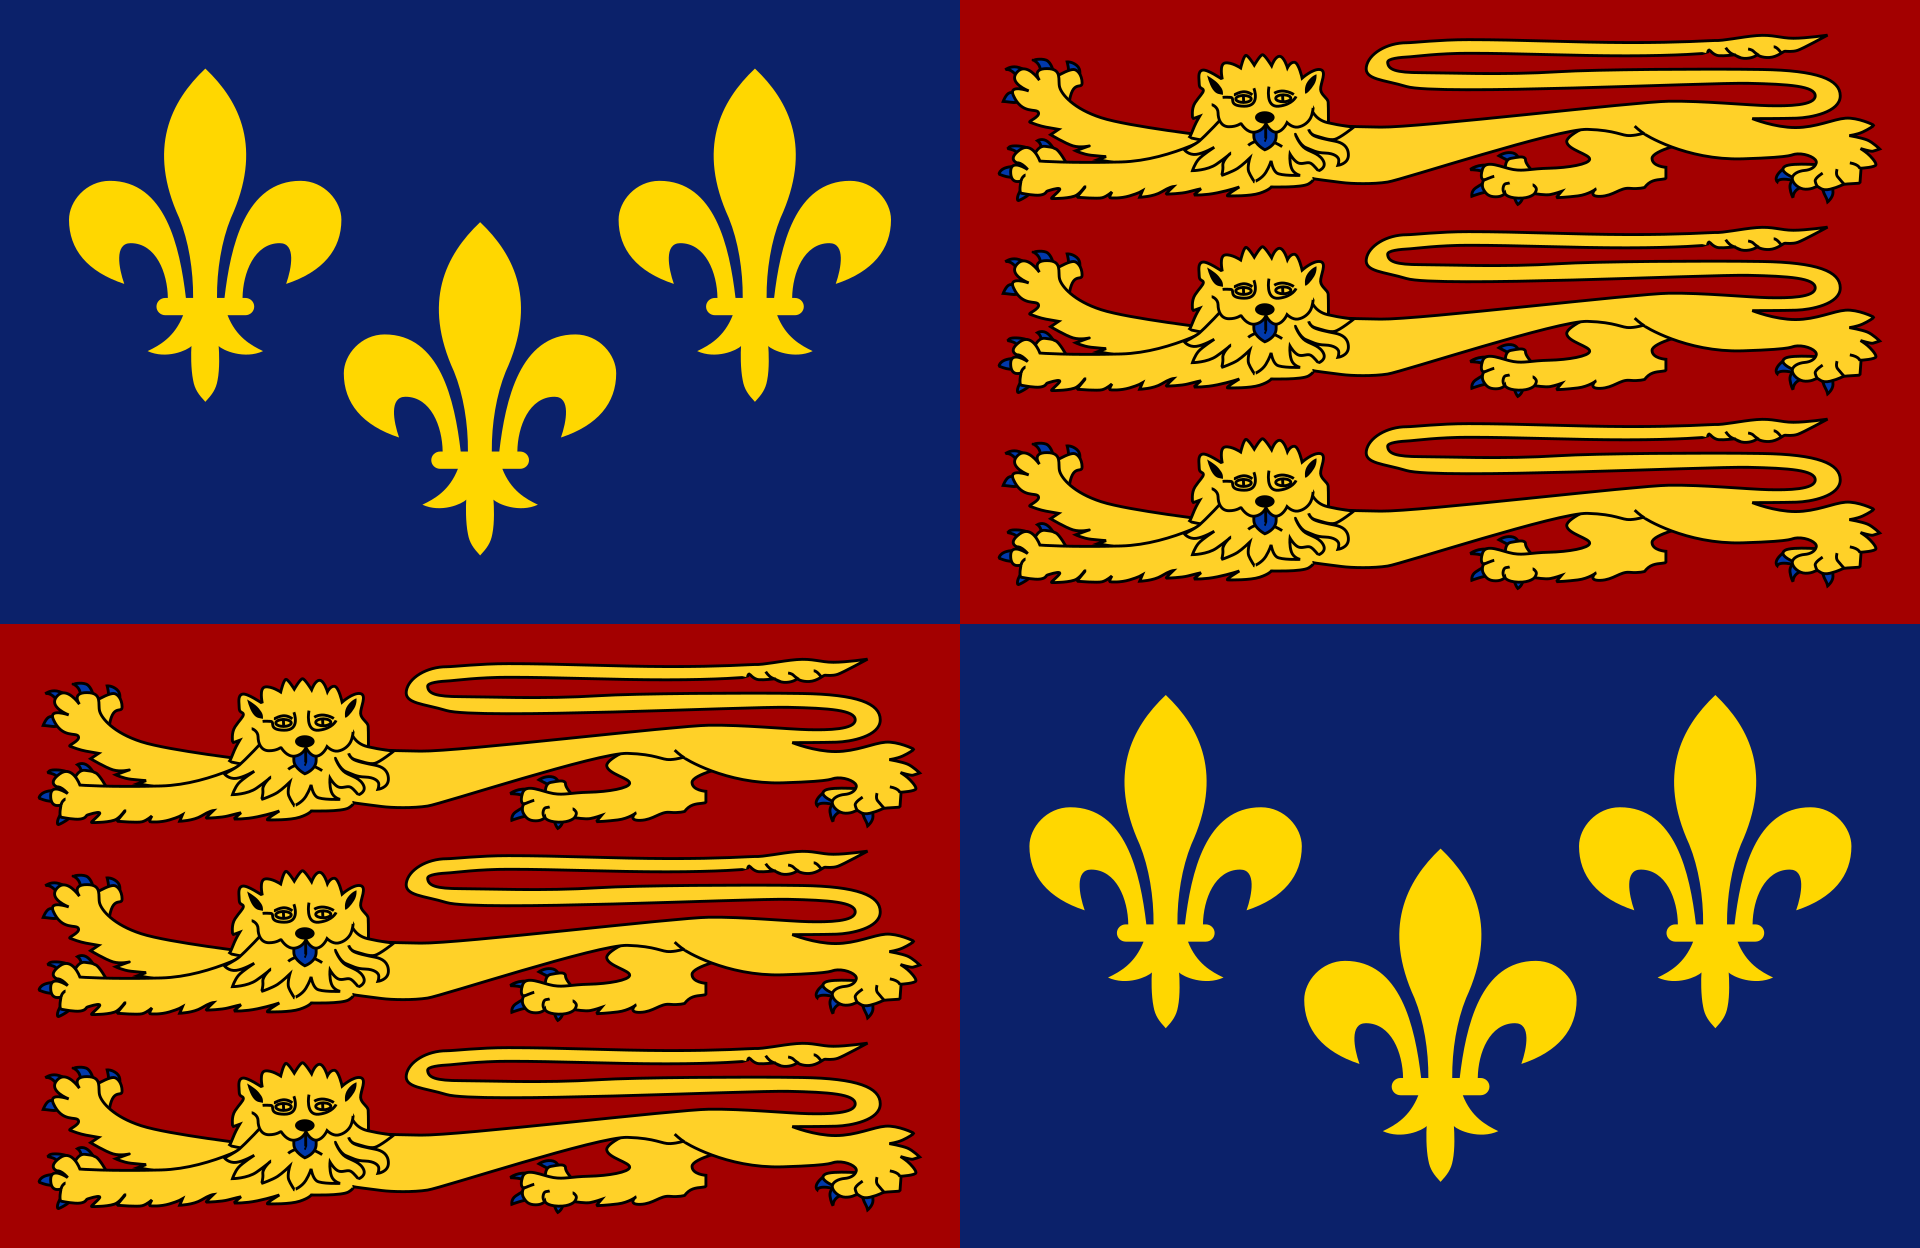 Kingdom of England (The English Conquest)